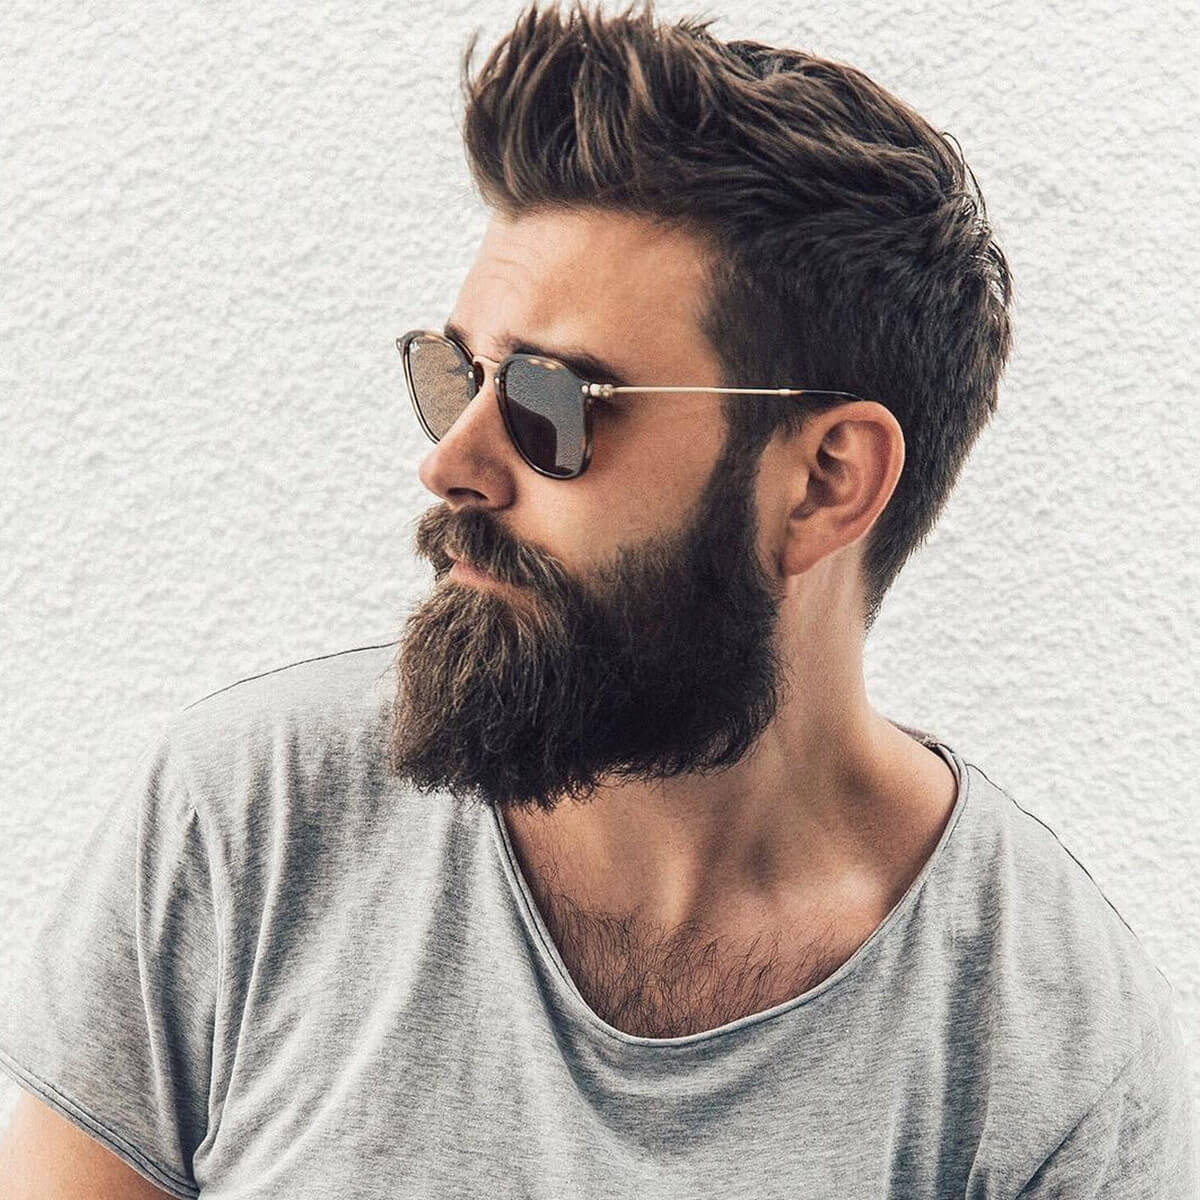 Looking for a gift for your man with beard?